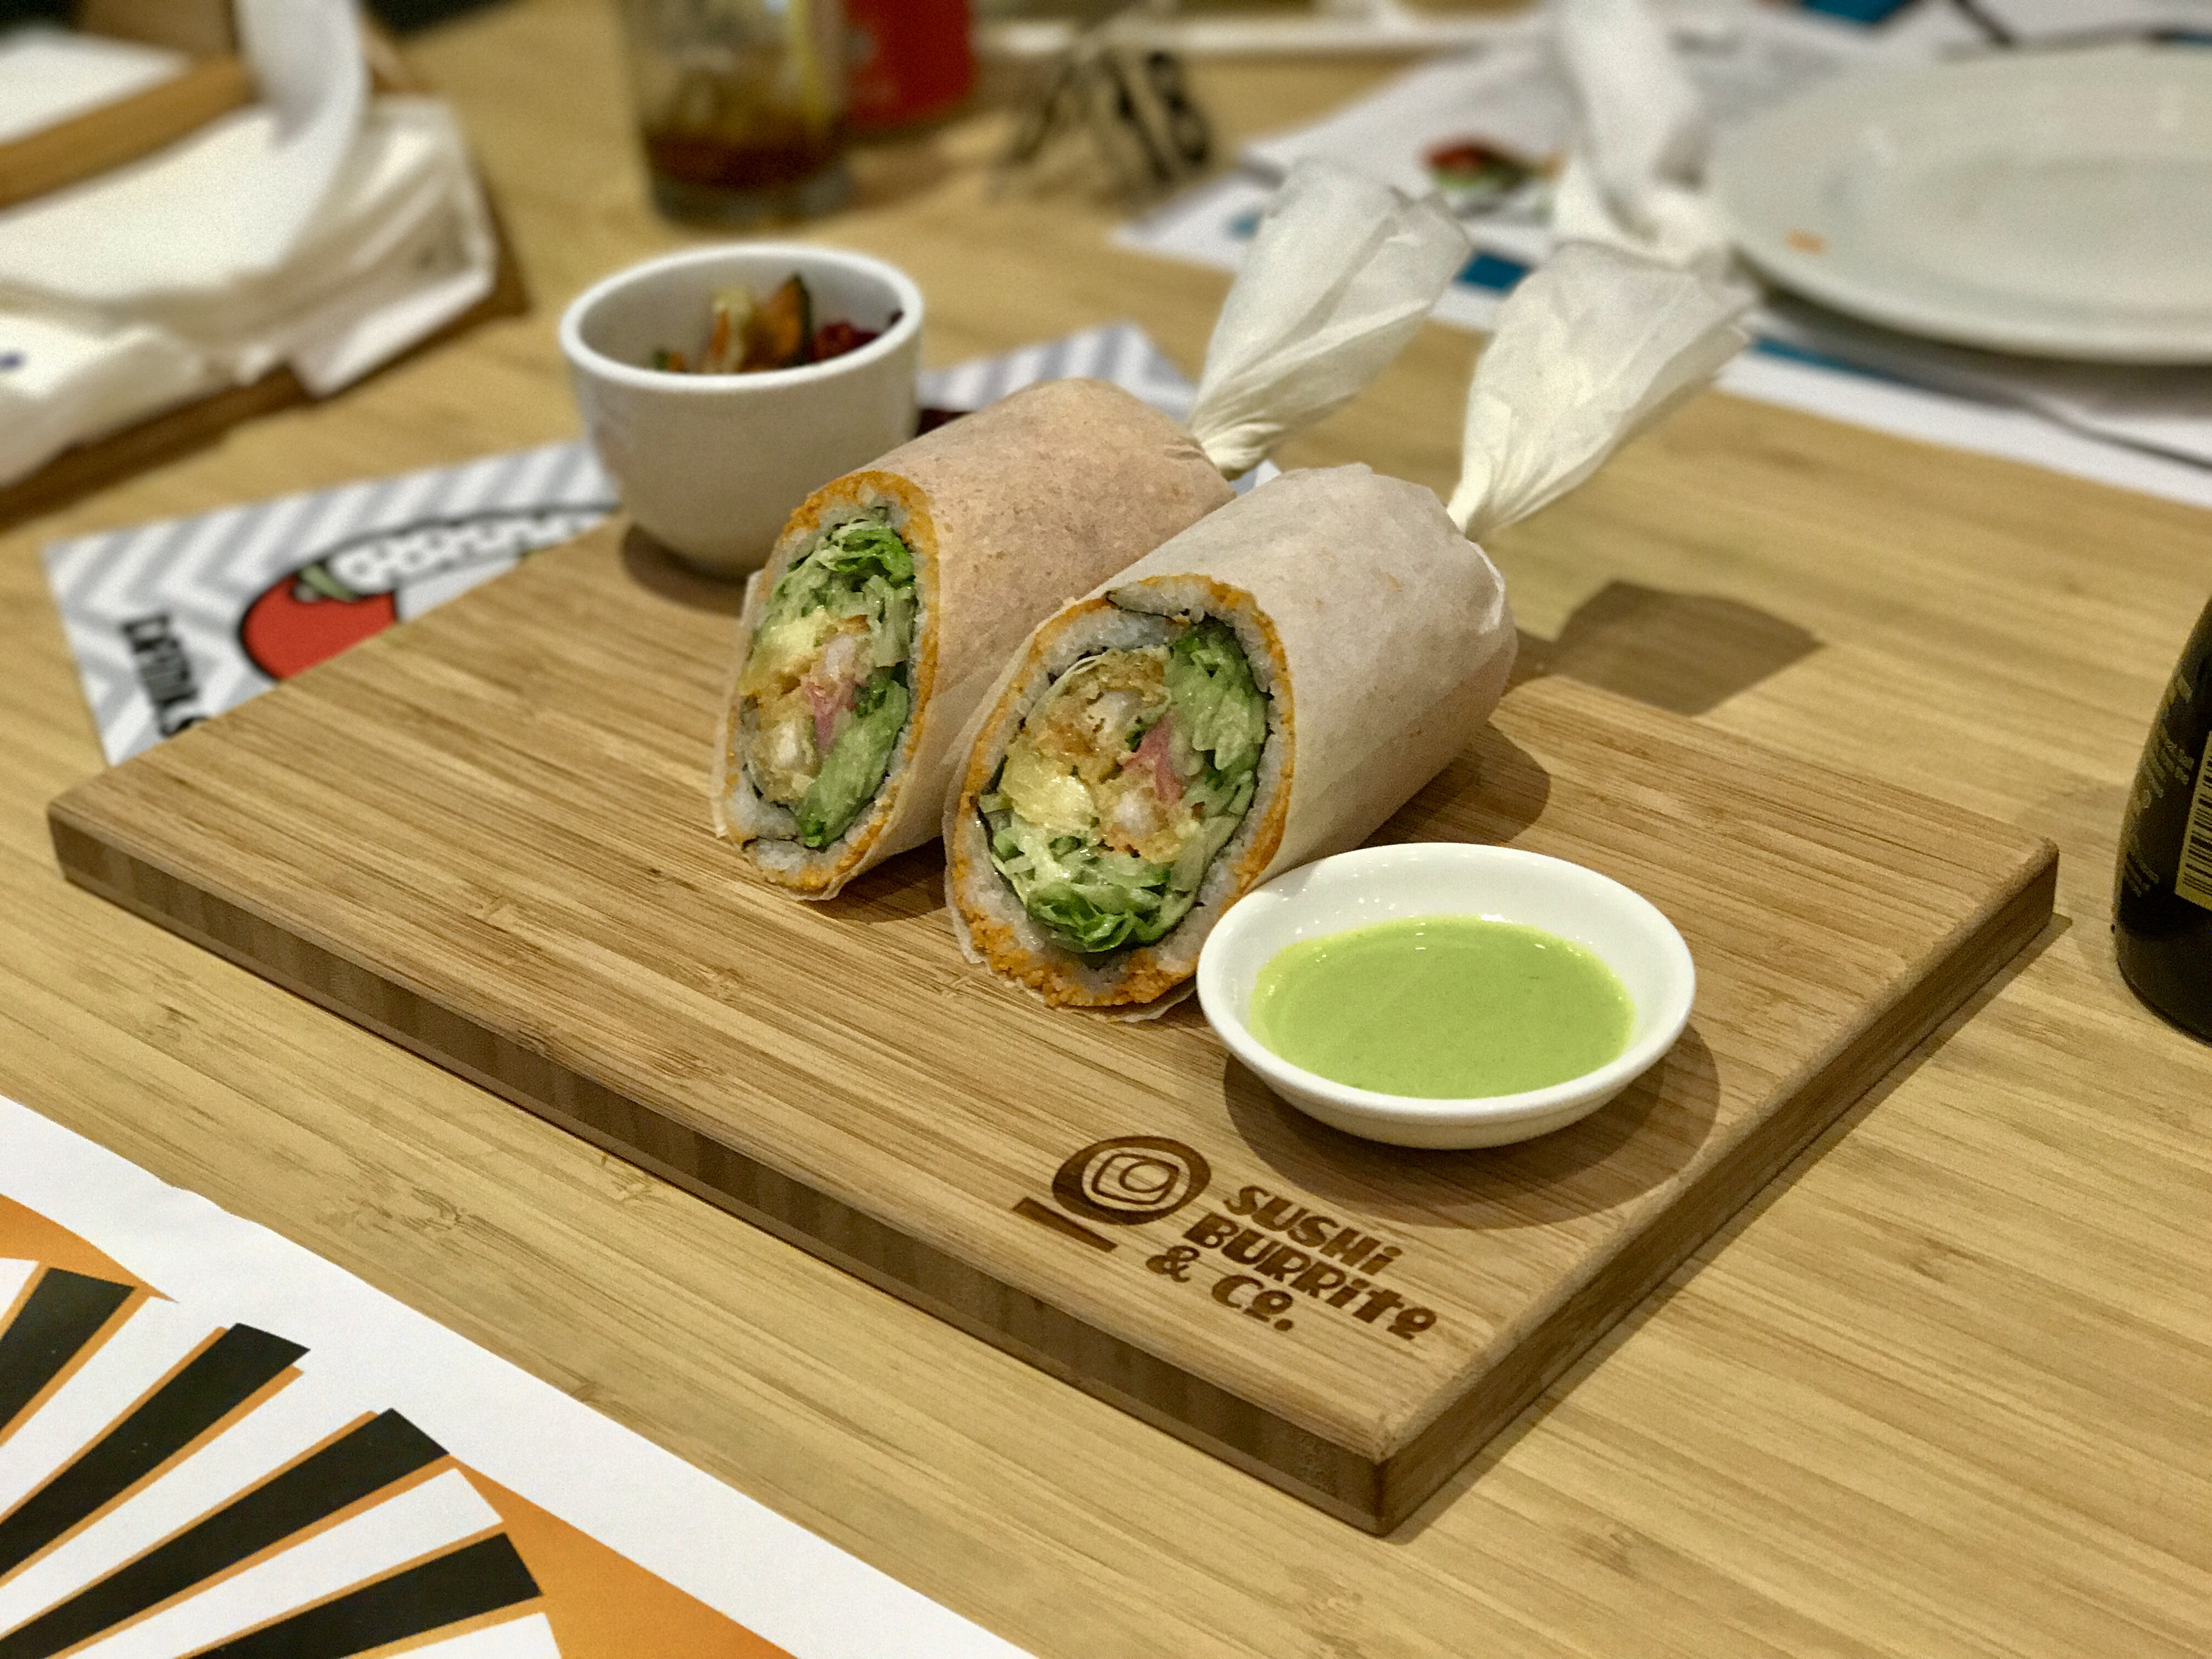 Sushi Burrito & Co. is a new concept restaurant for sushi lovers